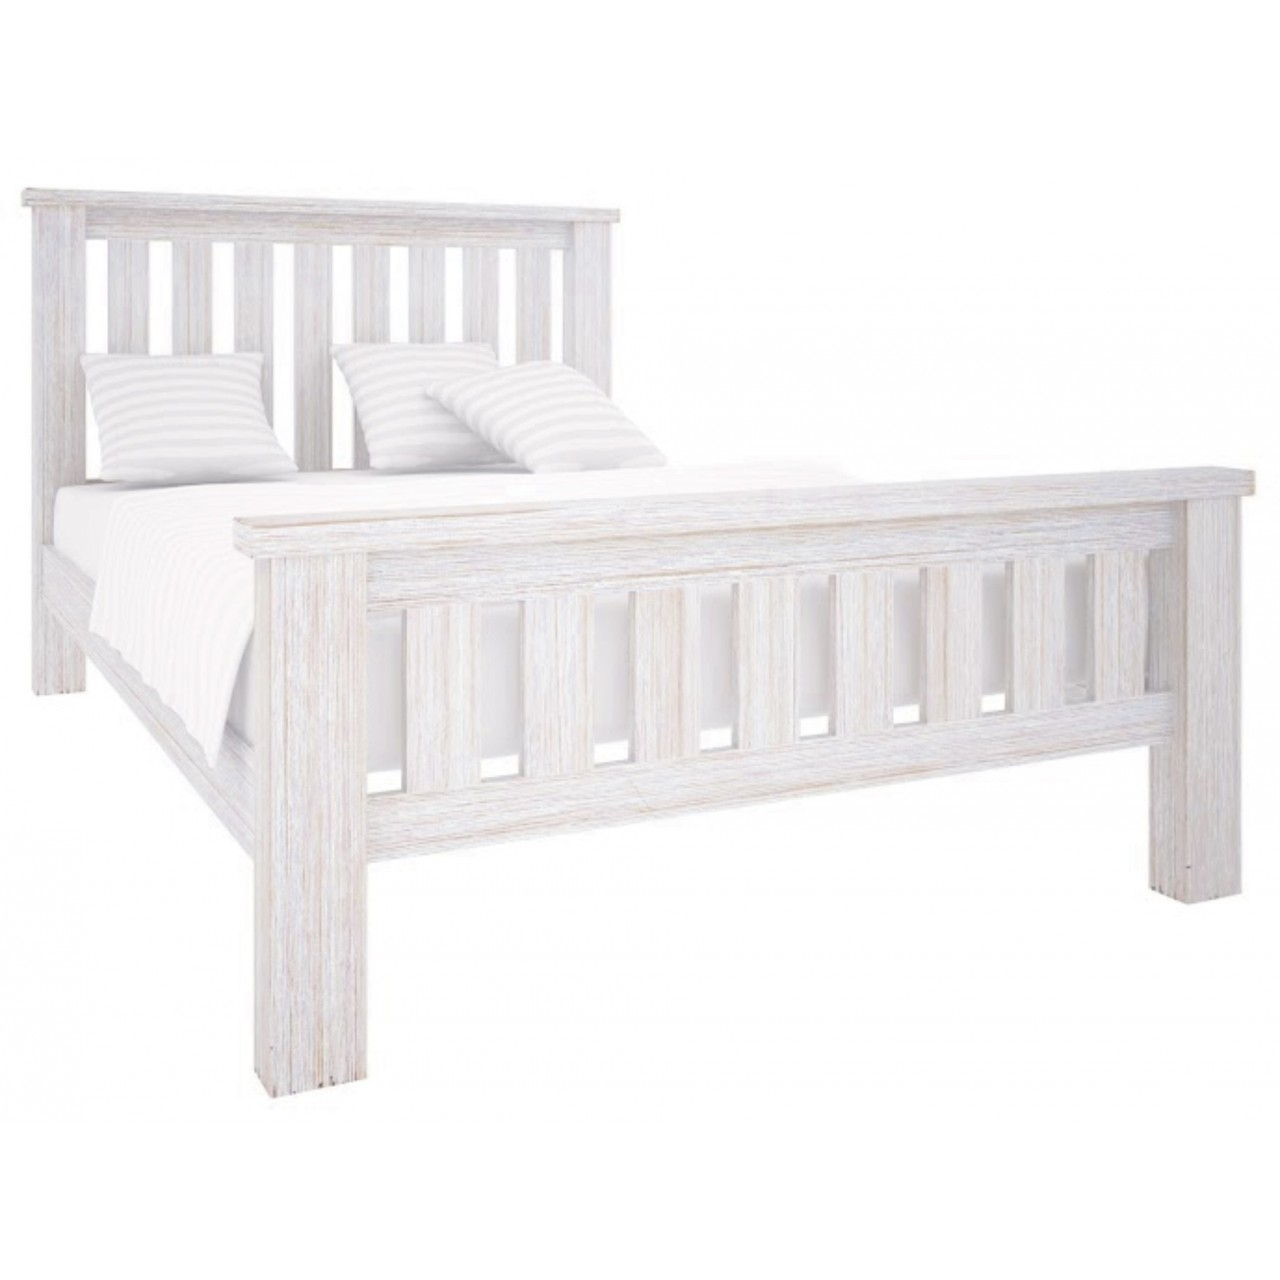 Tigress direct furniture and homewares for Floor bed frame